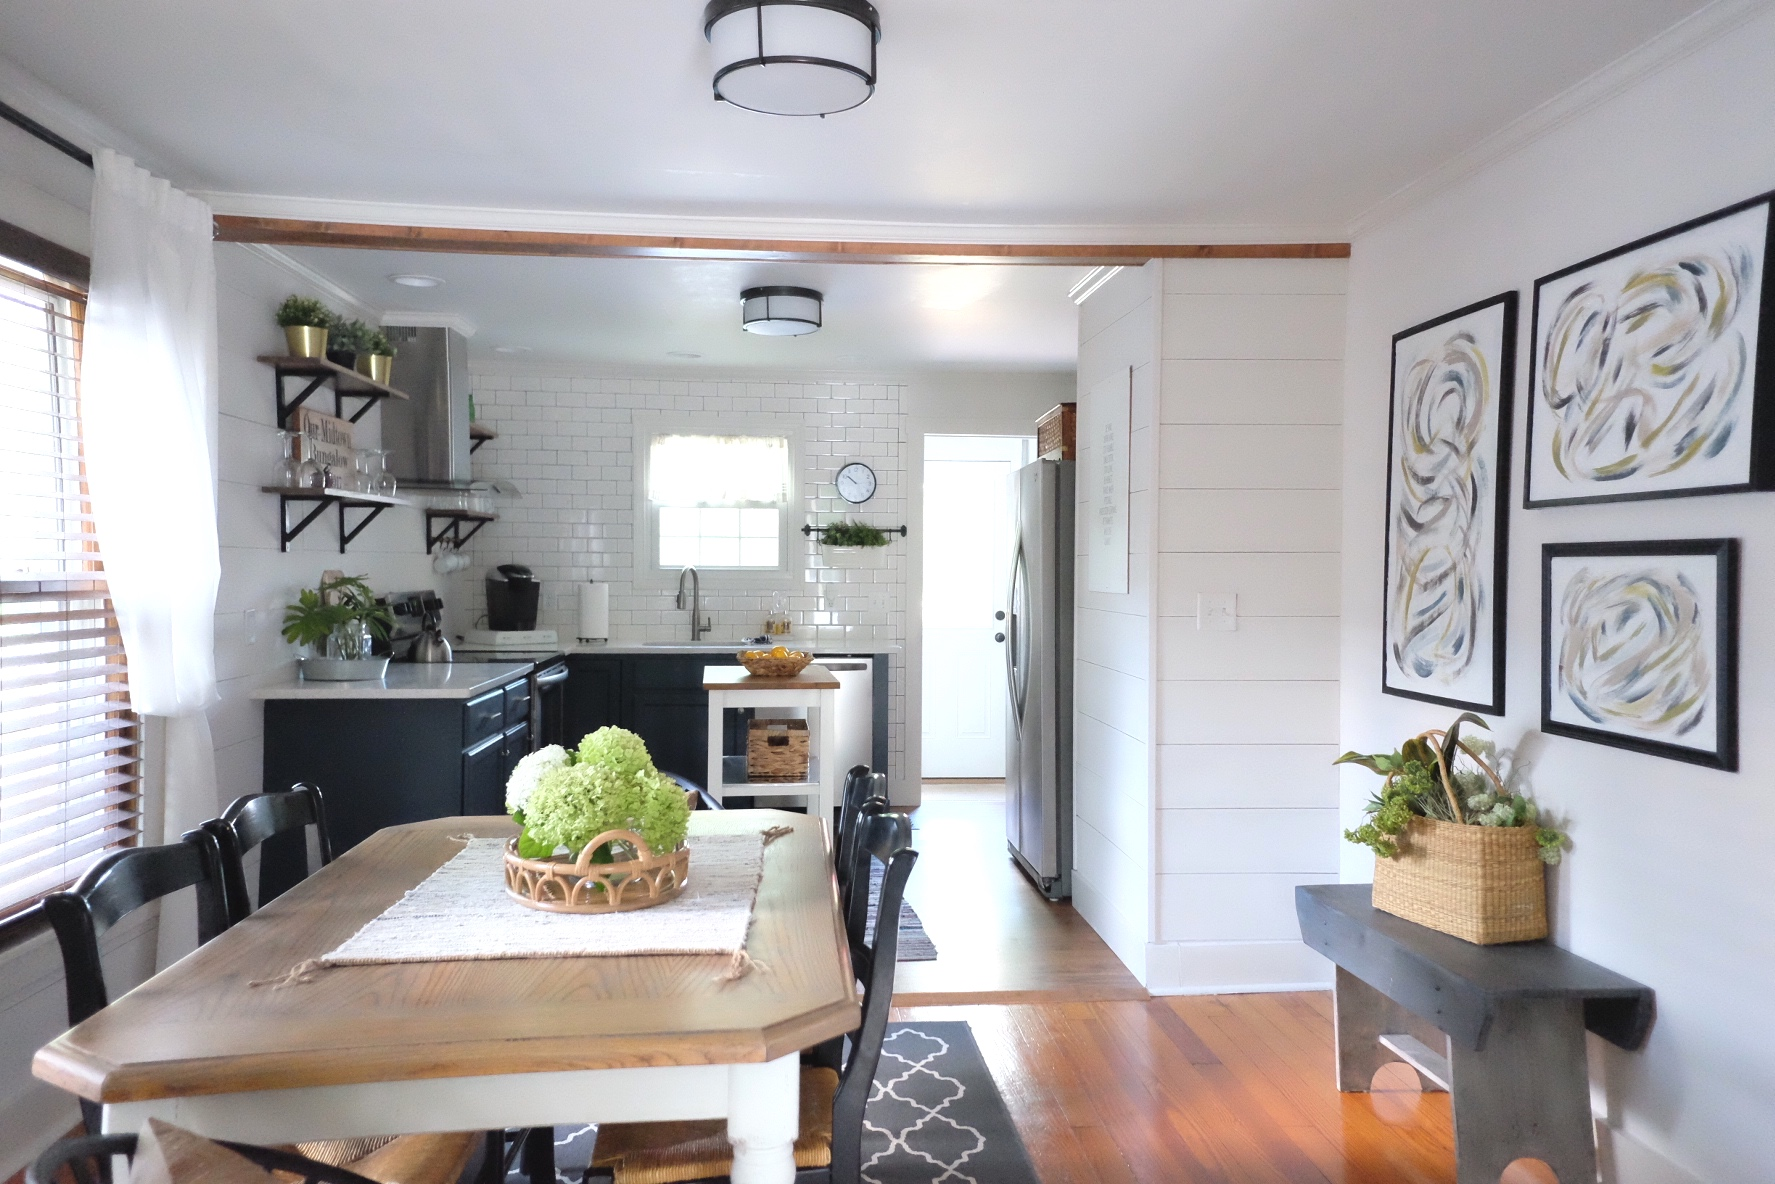 midtown bungalow airbnb in frederick, Md -   cottagestyleblog